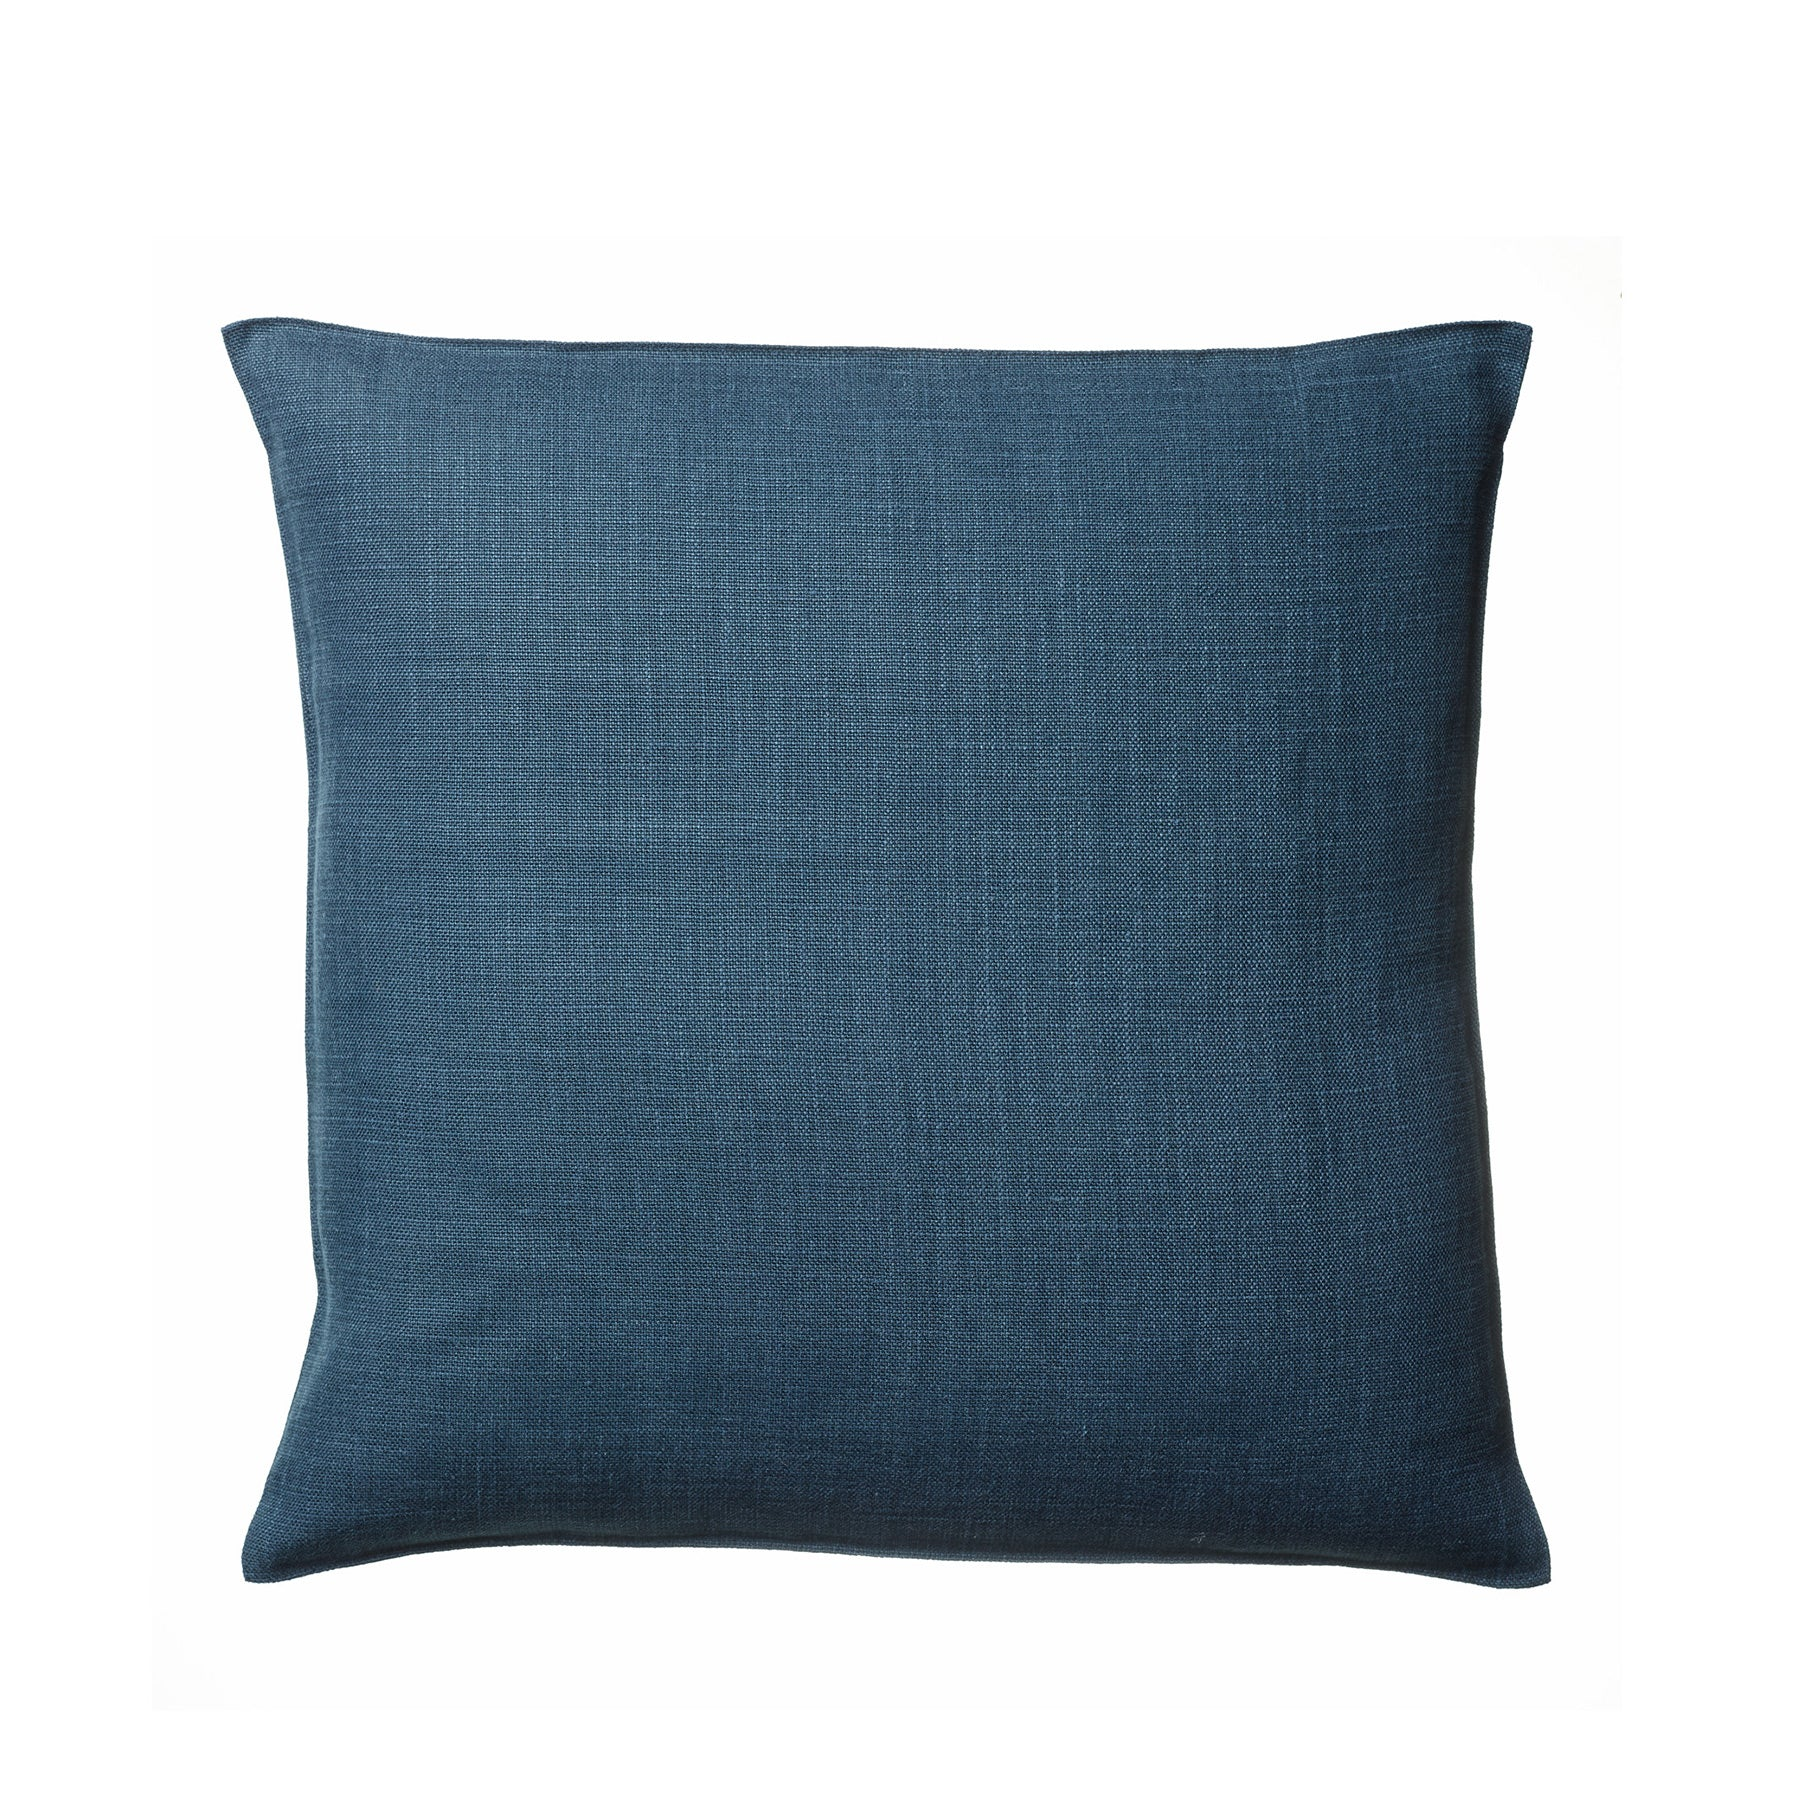 Linen Napoli Pillow in Navy Zoom Image 1